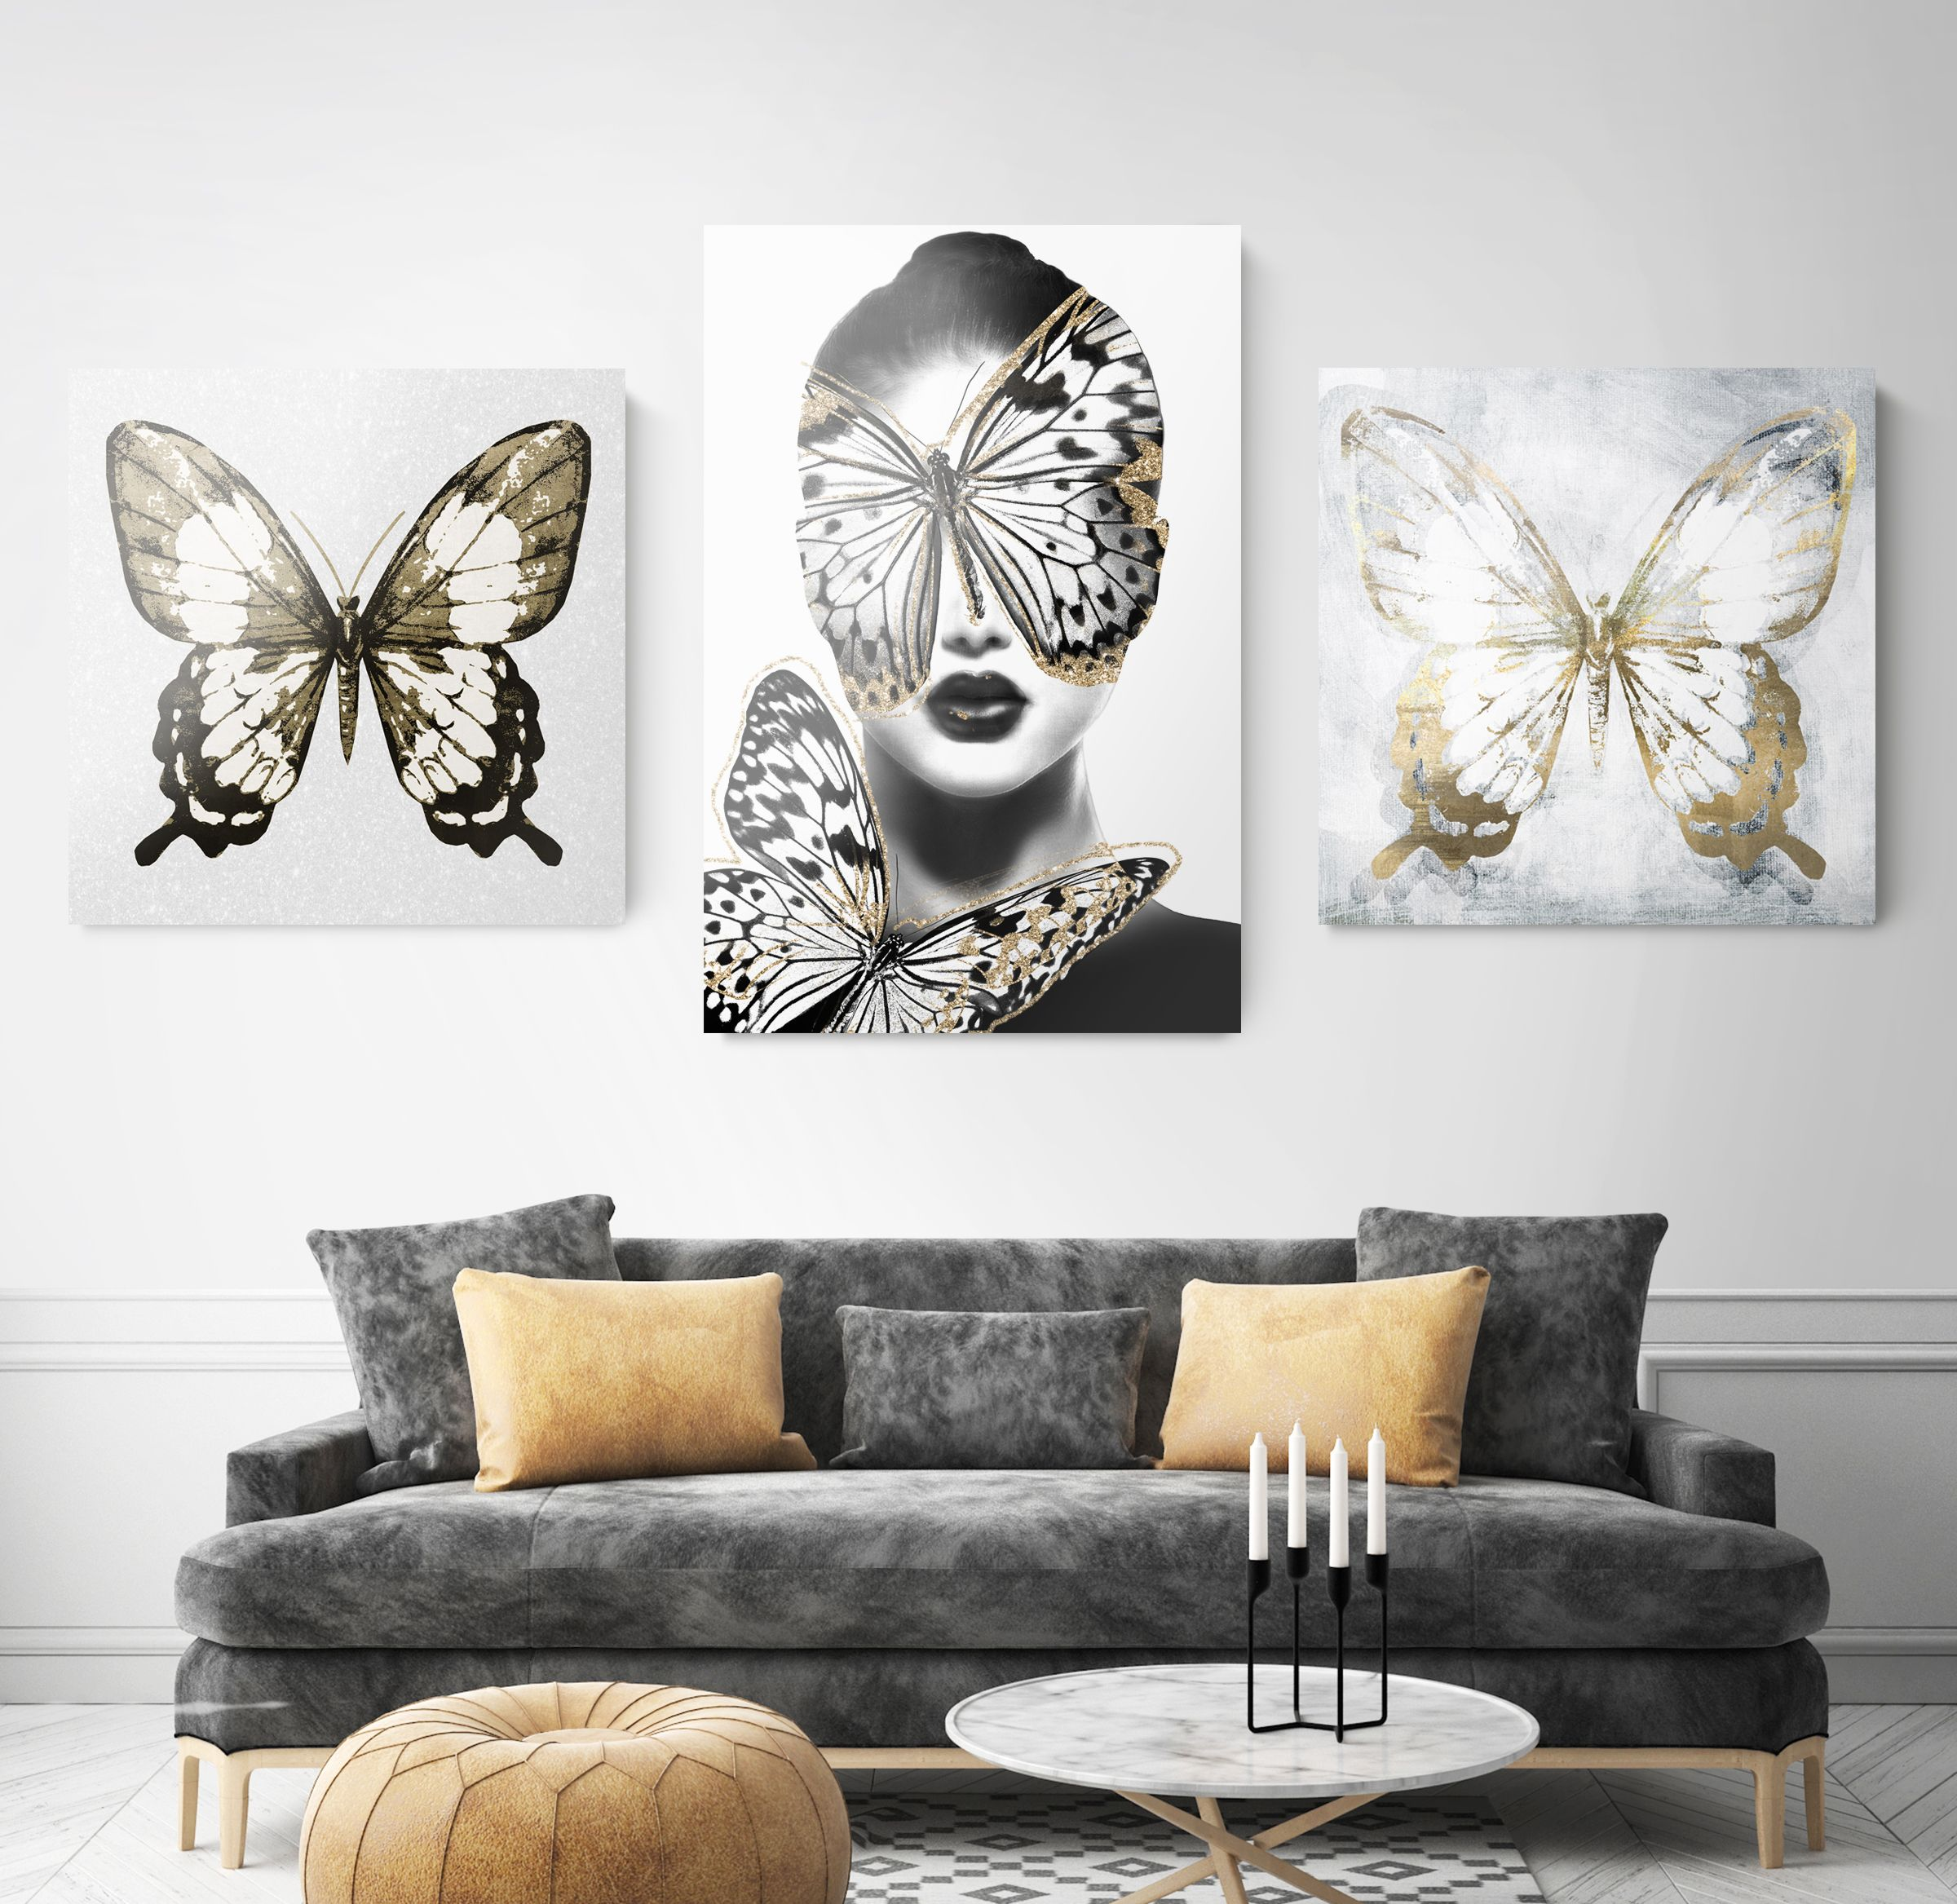 Dream Room Fashion Wall Art With Butterflies Wall Decor Oliver Gal Butterfly Wall Decor Wall Decor Decor